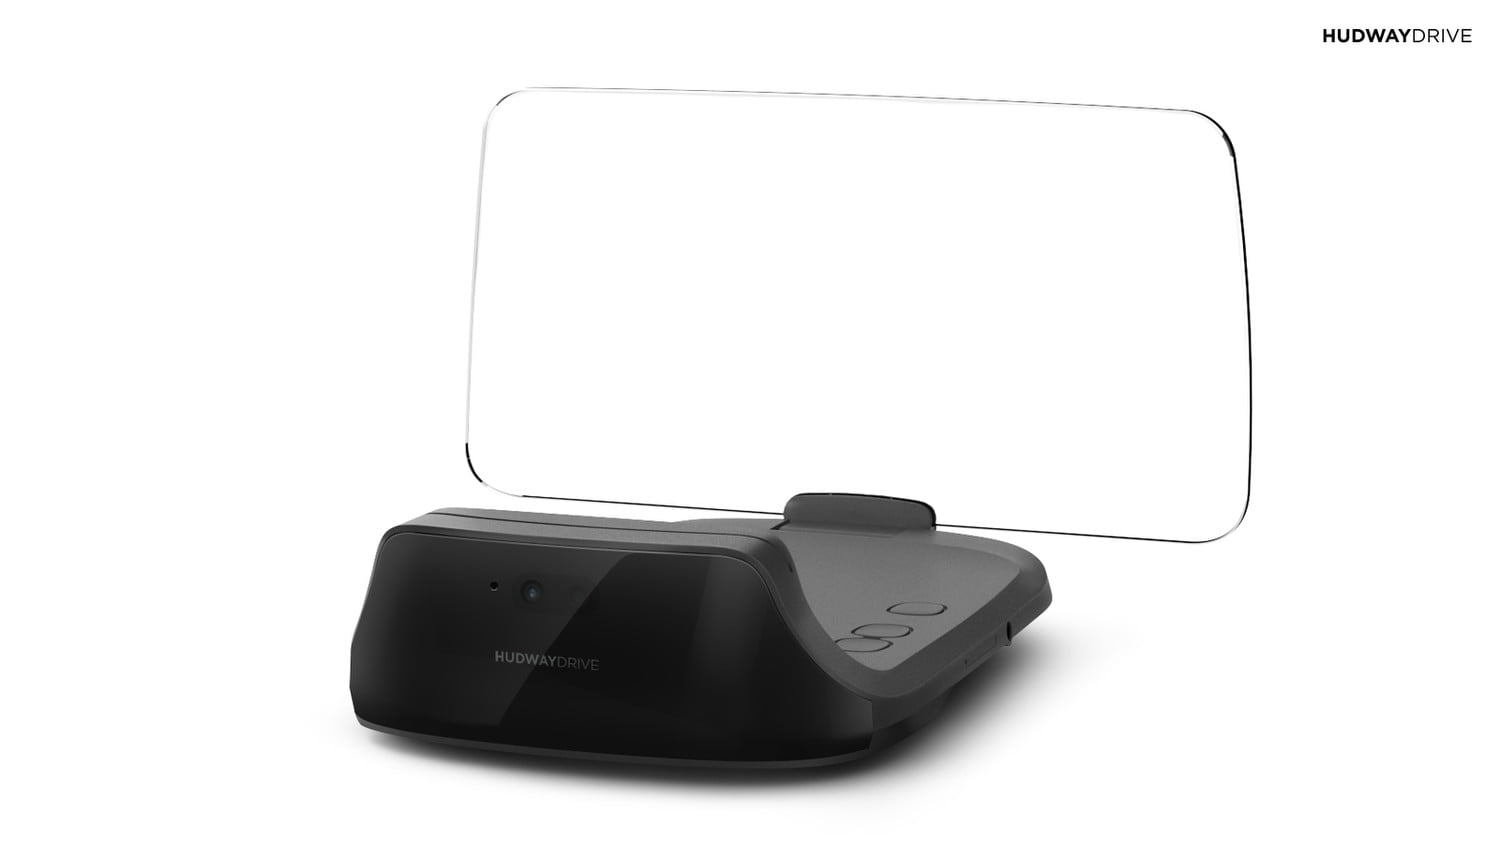 hudway drive heads up display hands on review device side